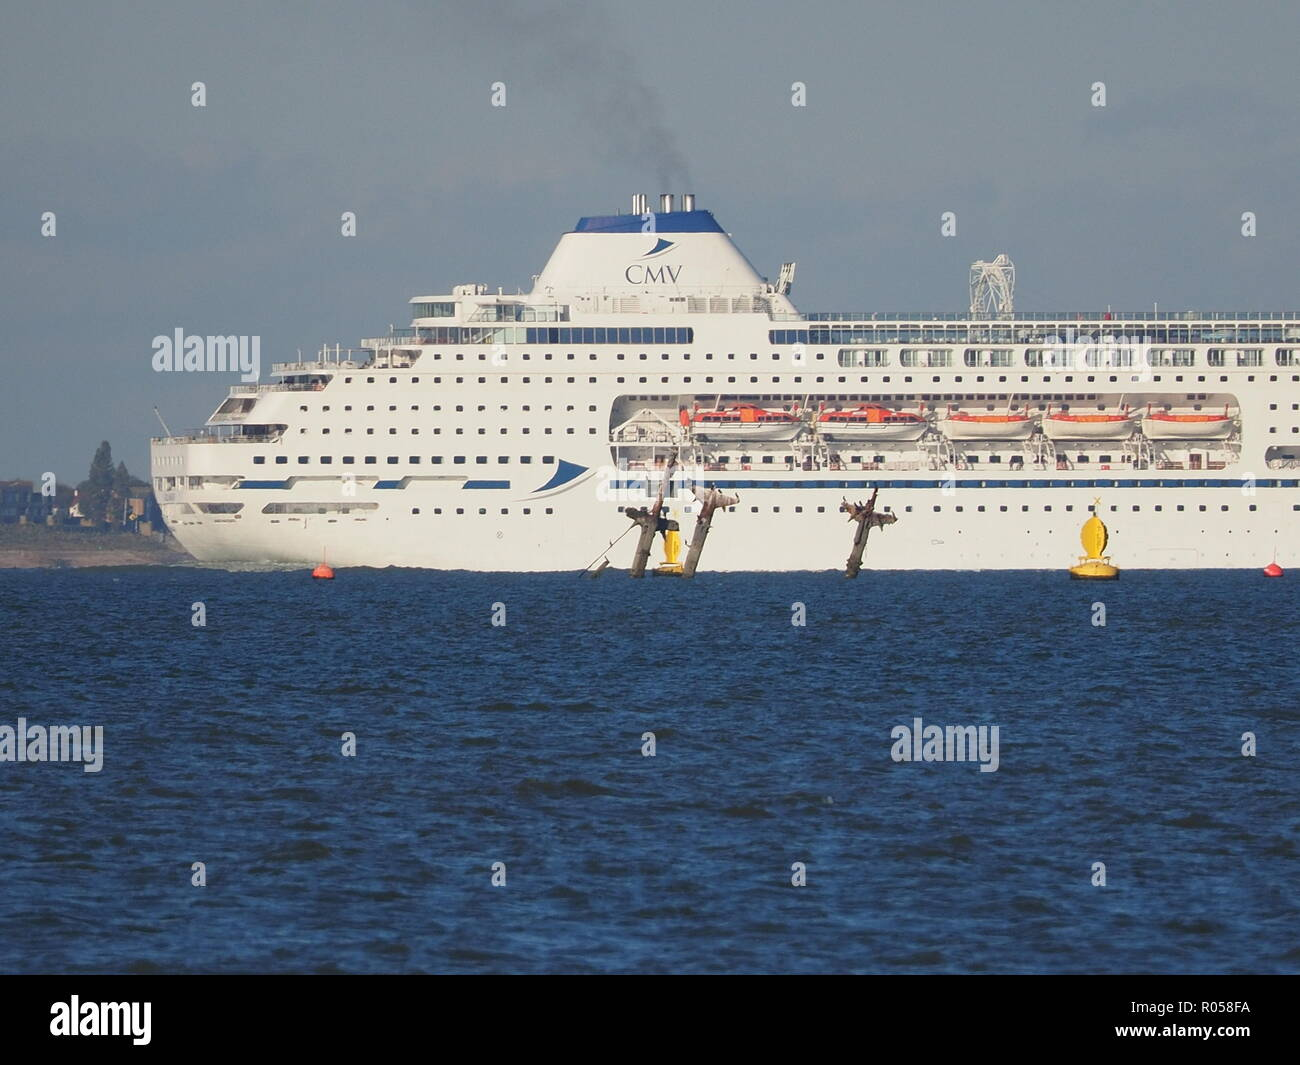 Sheerness, Kent, UK. 2nd Nov, 2018. Cruise ship 'Columbus' passing the masts of the SS Richard Montgomery off Sheerness on a sunny afternoon. Columbus is 246m long by 32m wide and was built in 1988.  Credit: James Bell/Alamy Live News - Stock Image